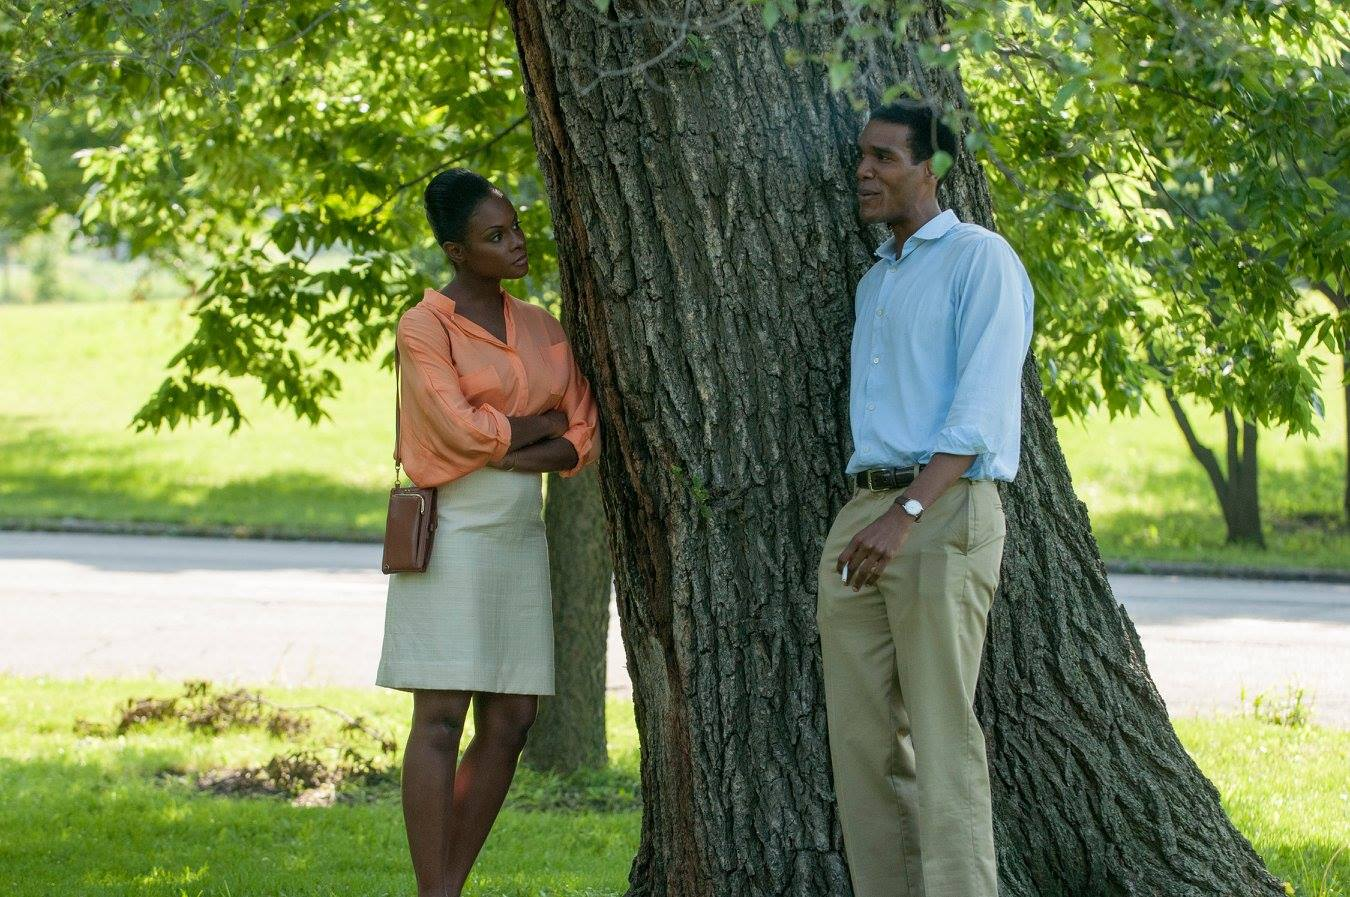 Michelle and Barack share a conversation leaning against a tree.